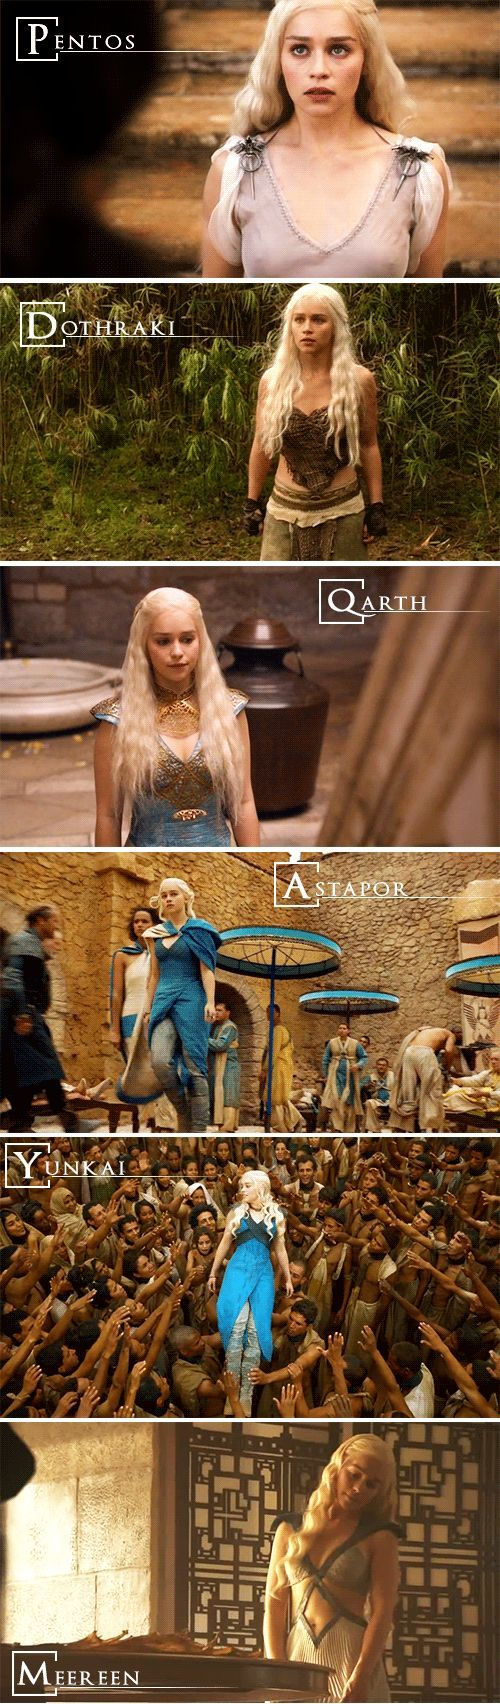 Daenerys Targaryen (This is really going to bug me. The second picture should be Essos. Essos is the place, Dothraki is the race of people and language. And since all the other pictures are of outfits in the place she wears them the second one should be changed.)